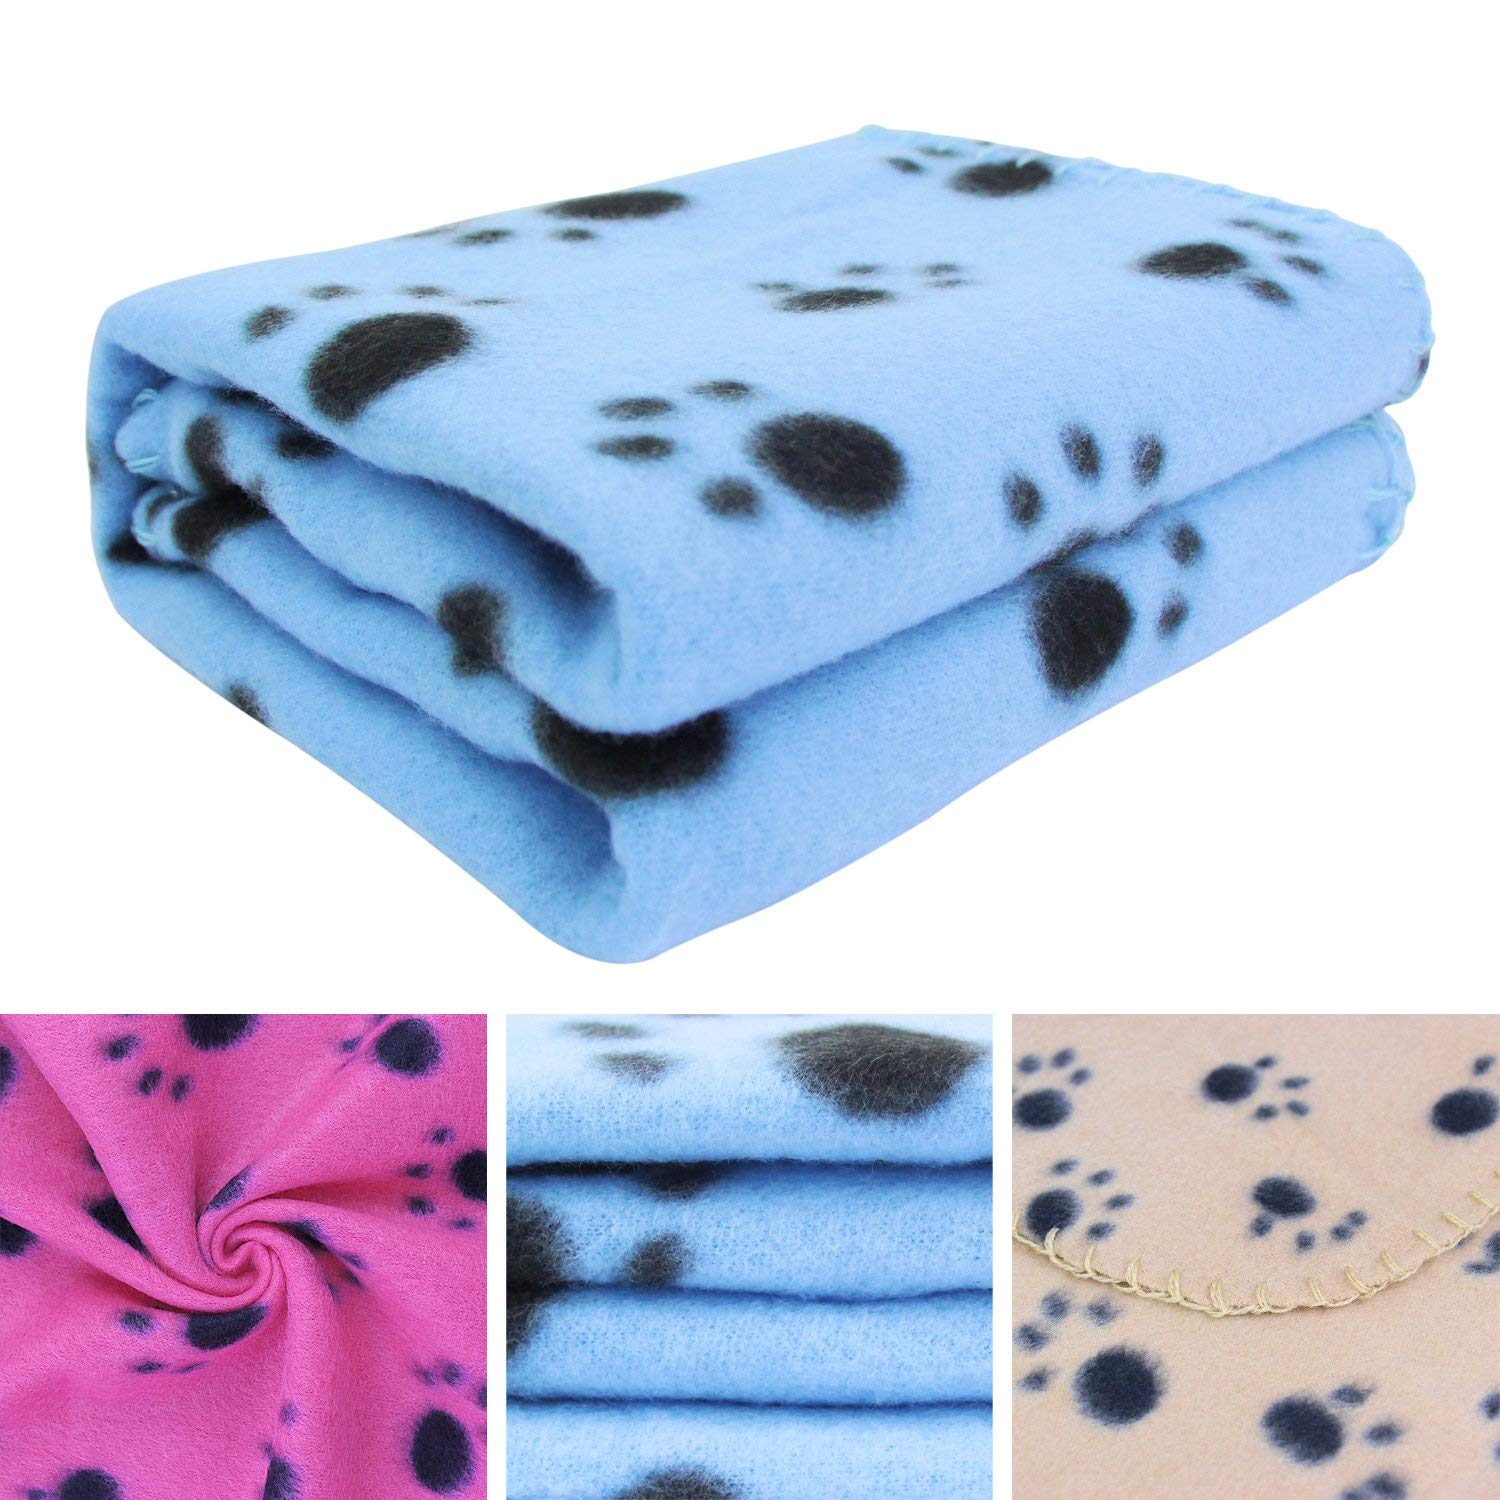 KYC 3 pack 40 x 28 '' Puppy Blanket Cushion Dog Cat Fleece Blankets Pet Sleep Mat Pad Bed Cover with Paw Print Kitten Soft Warm Blanket for Animals (Mixed A) by KYC (Image #4)